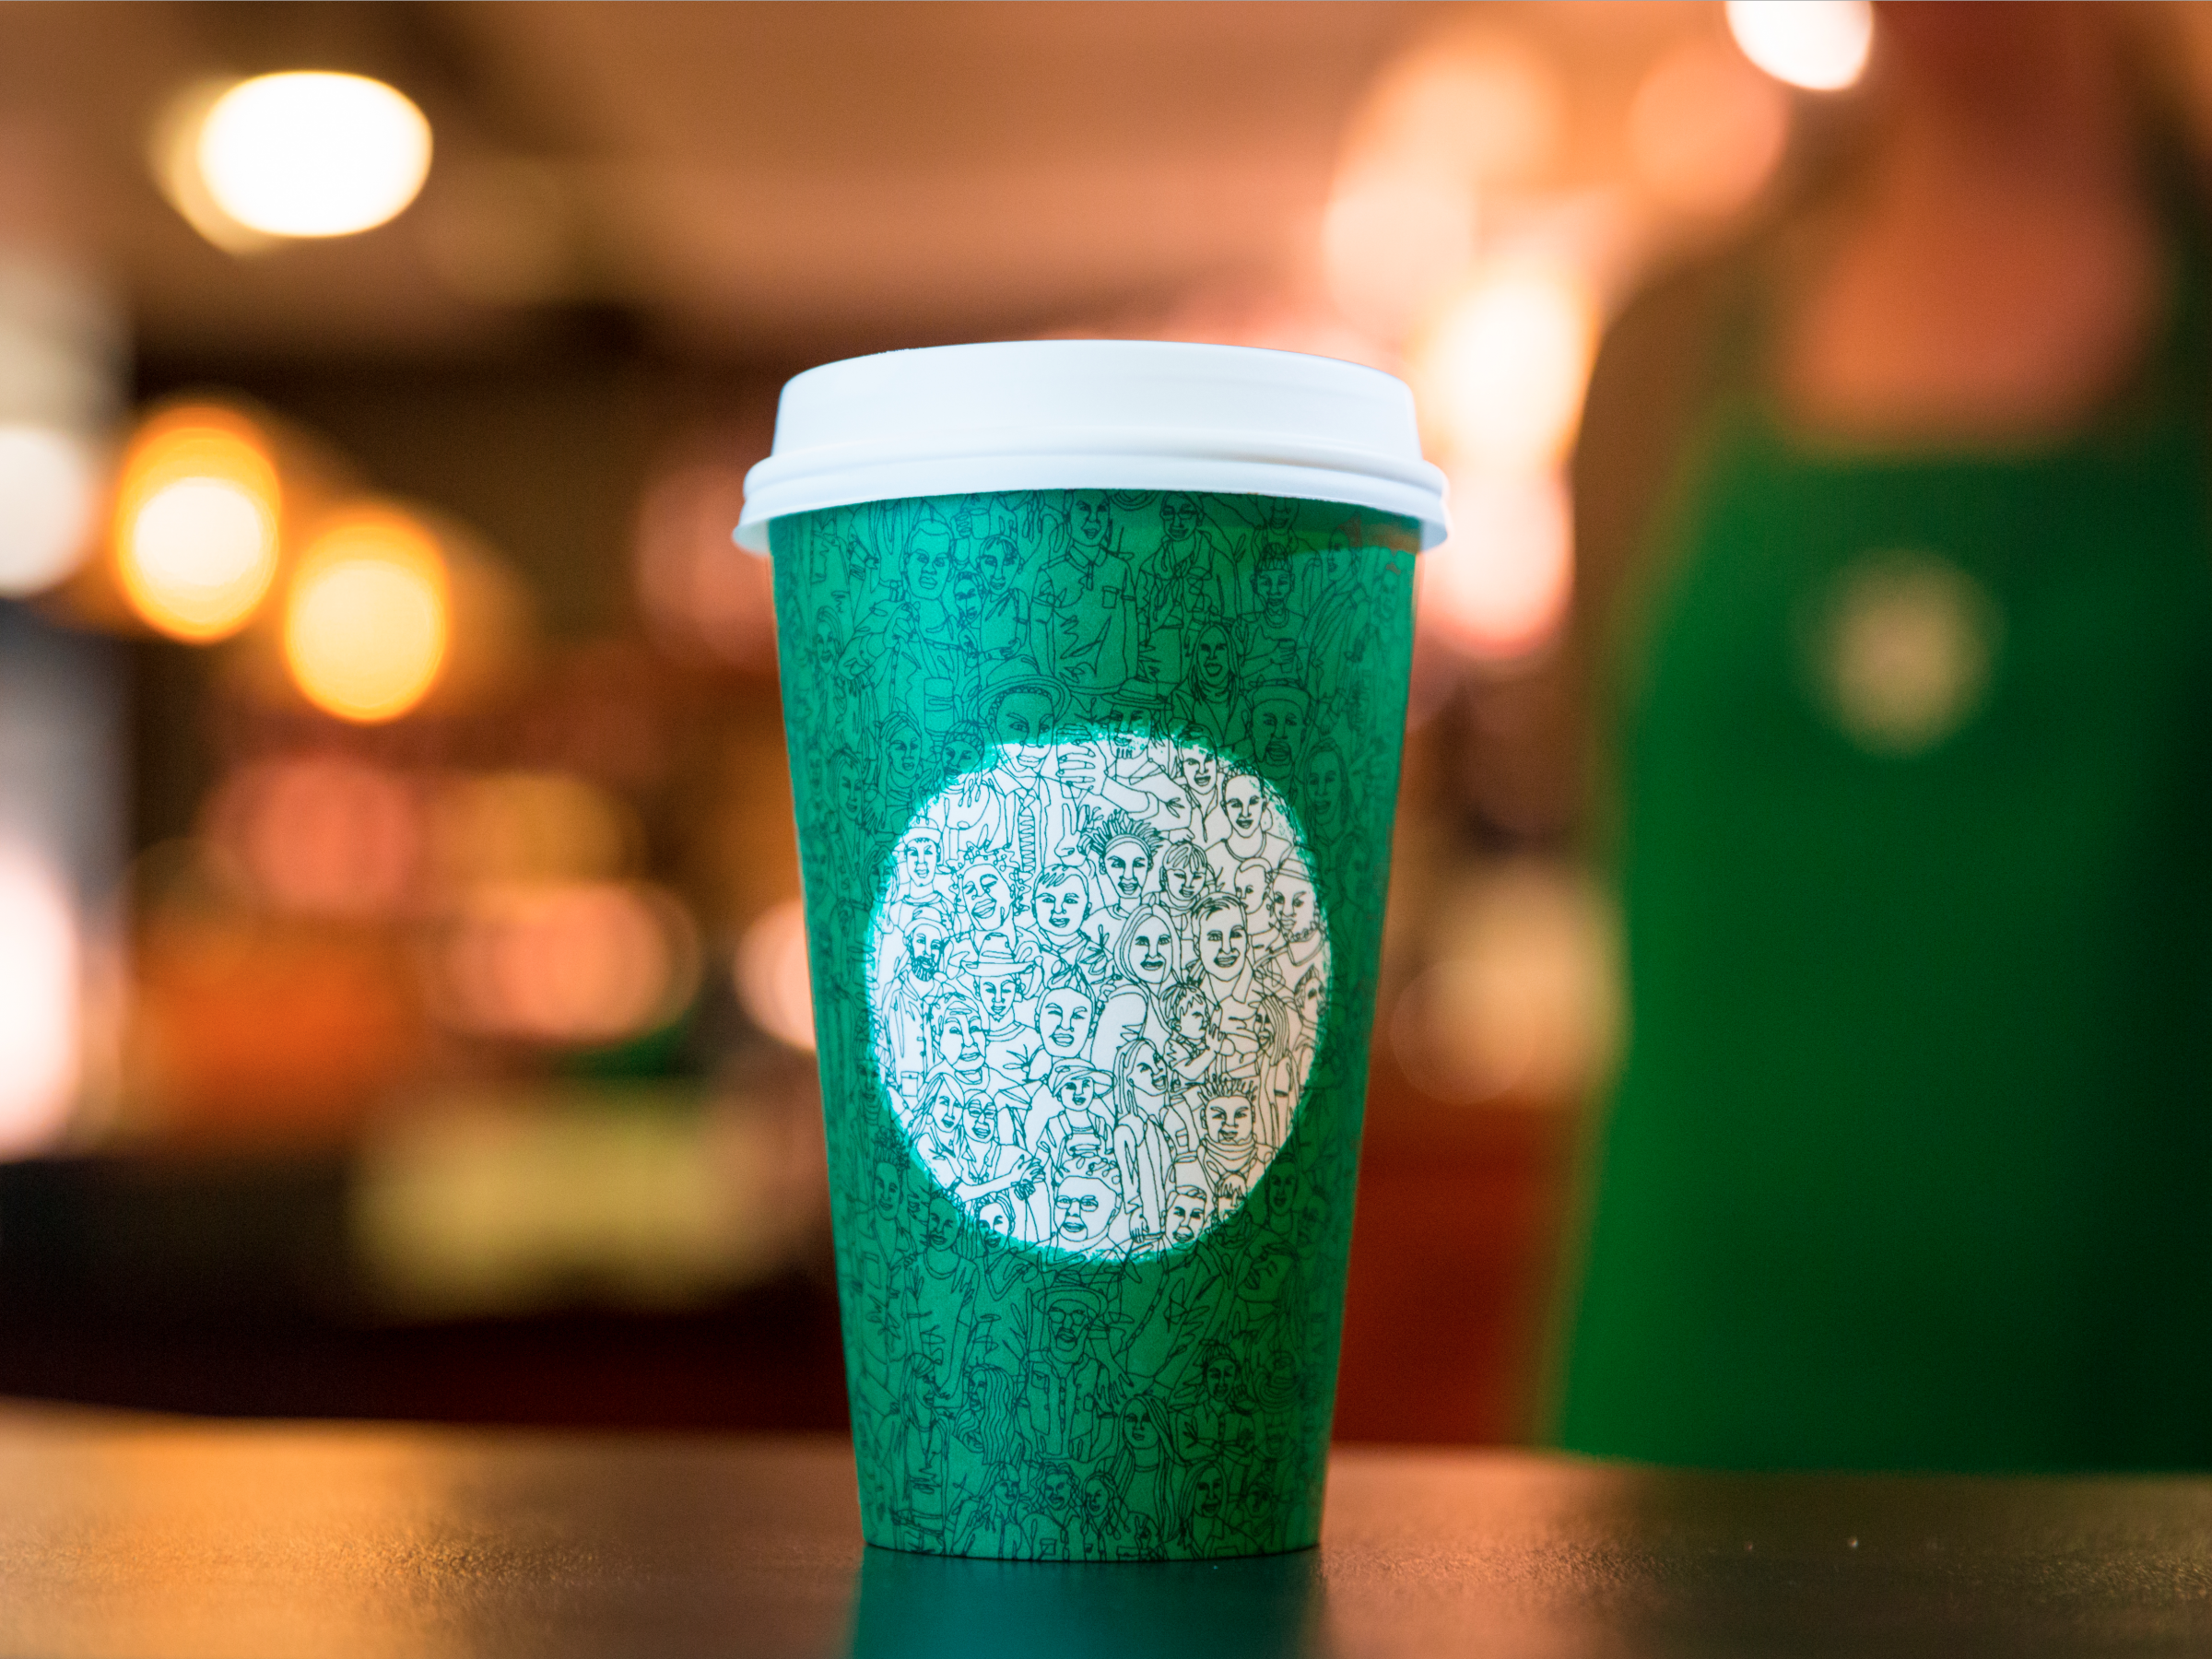 Starbucks Released a Green Cup—and I'd Be Lying if I Said I Didn't Care